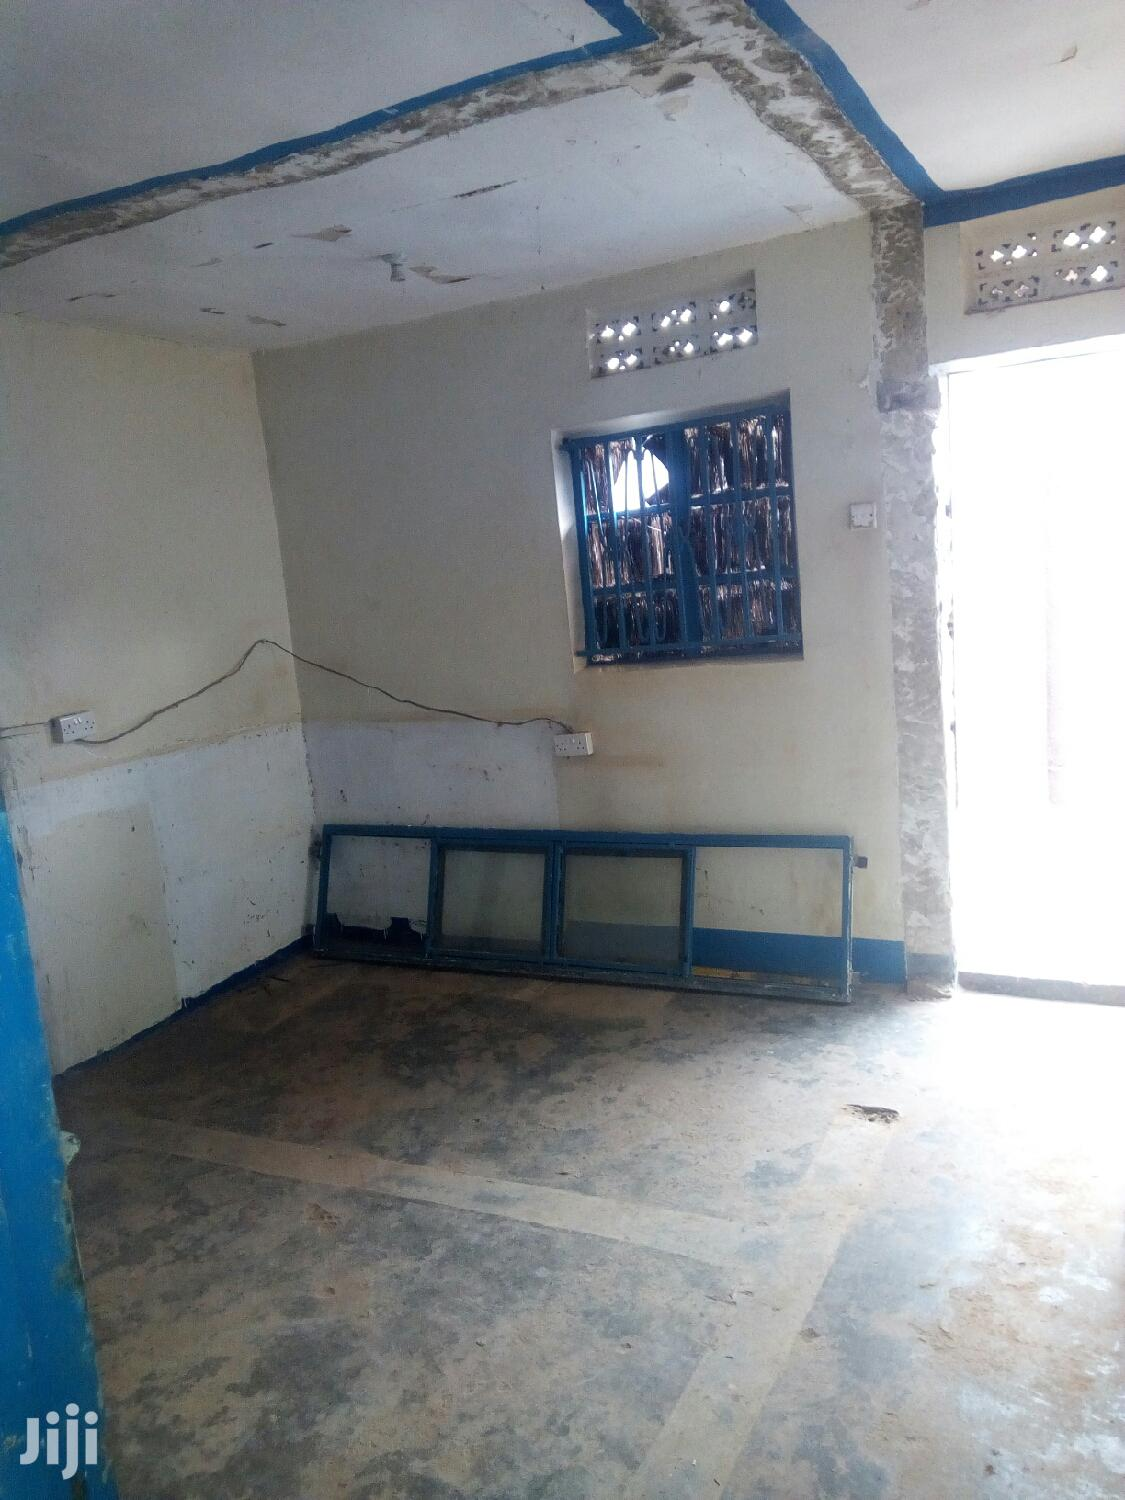 New Double Room Shop for Rent in Kireka Center. | Houses & Apartments For Rent for sale in Kampala, Central Region, Uganda